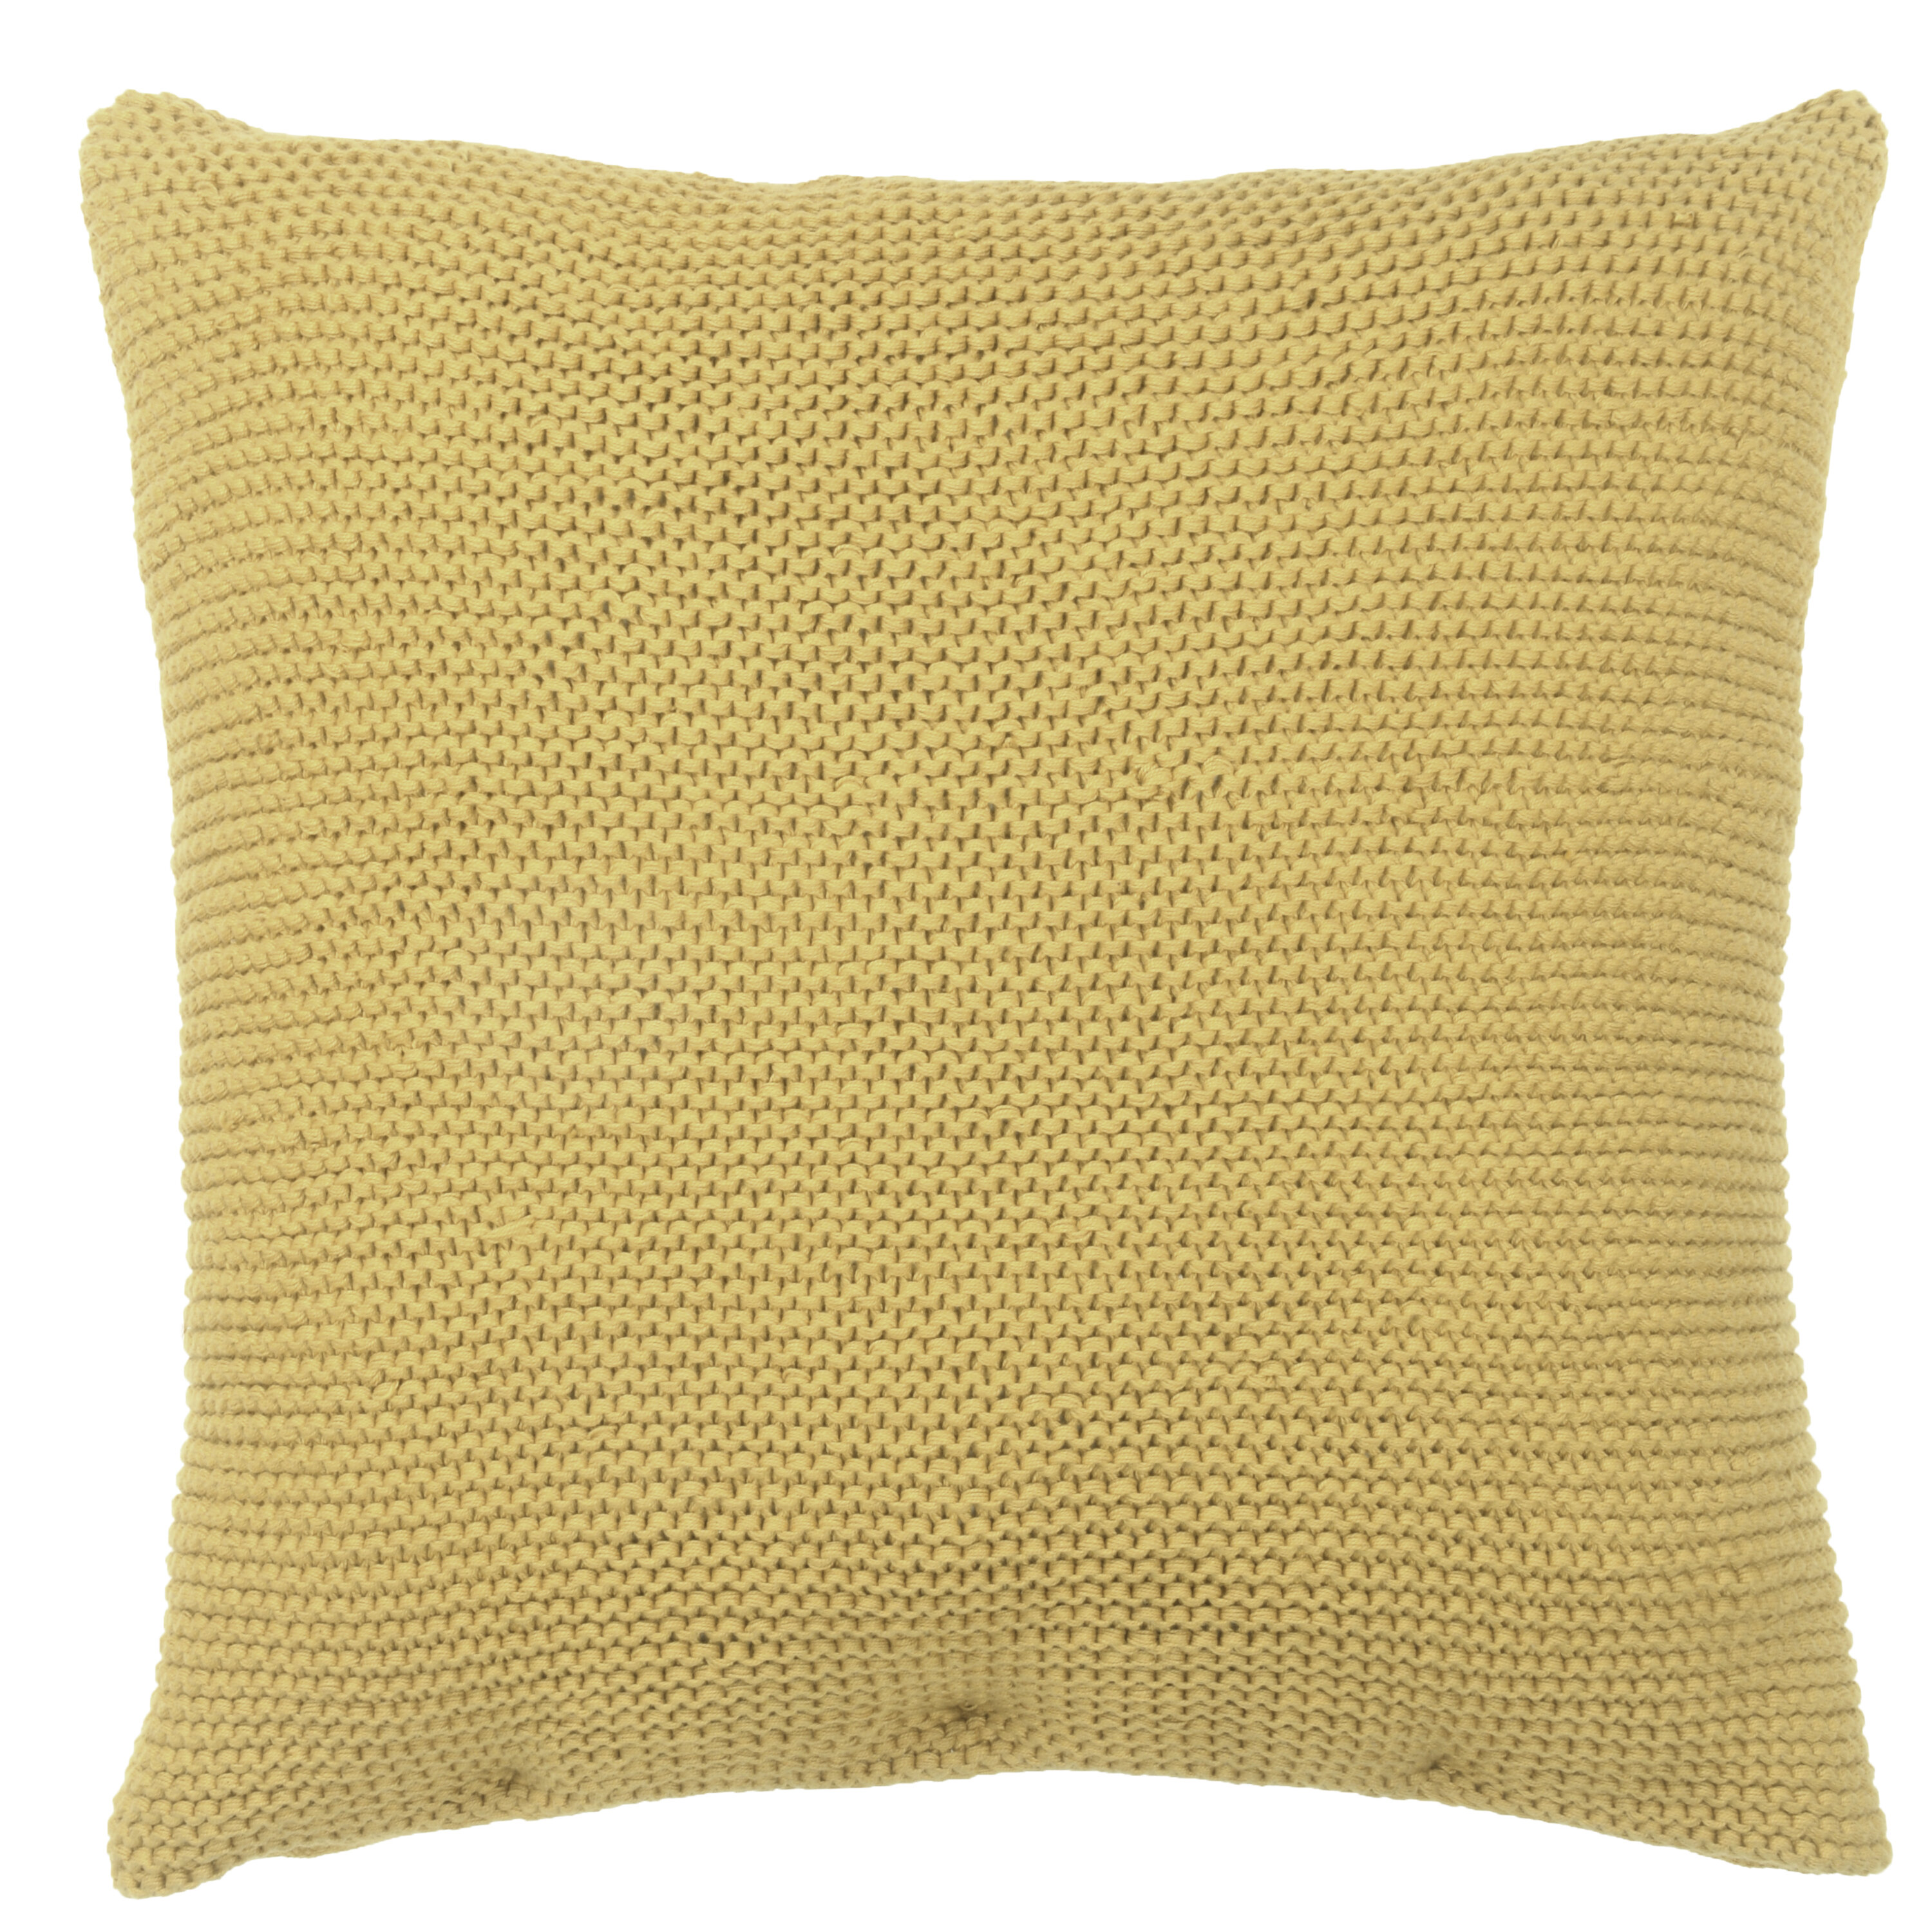 Foundry Select Newnan Enviohome Hand Loomed Cotton Throw Pillow Cover Wayfair